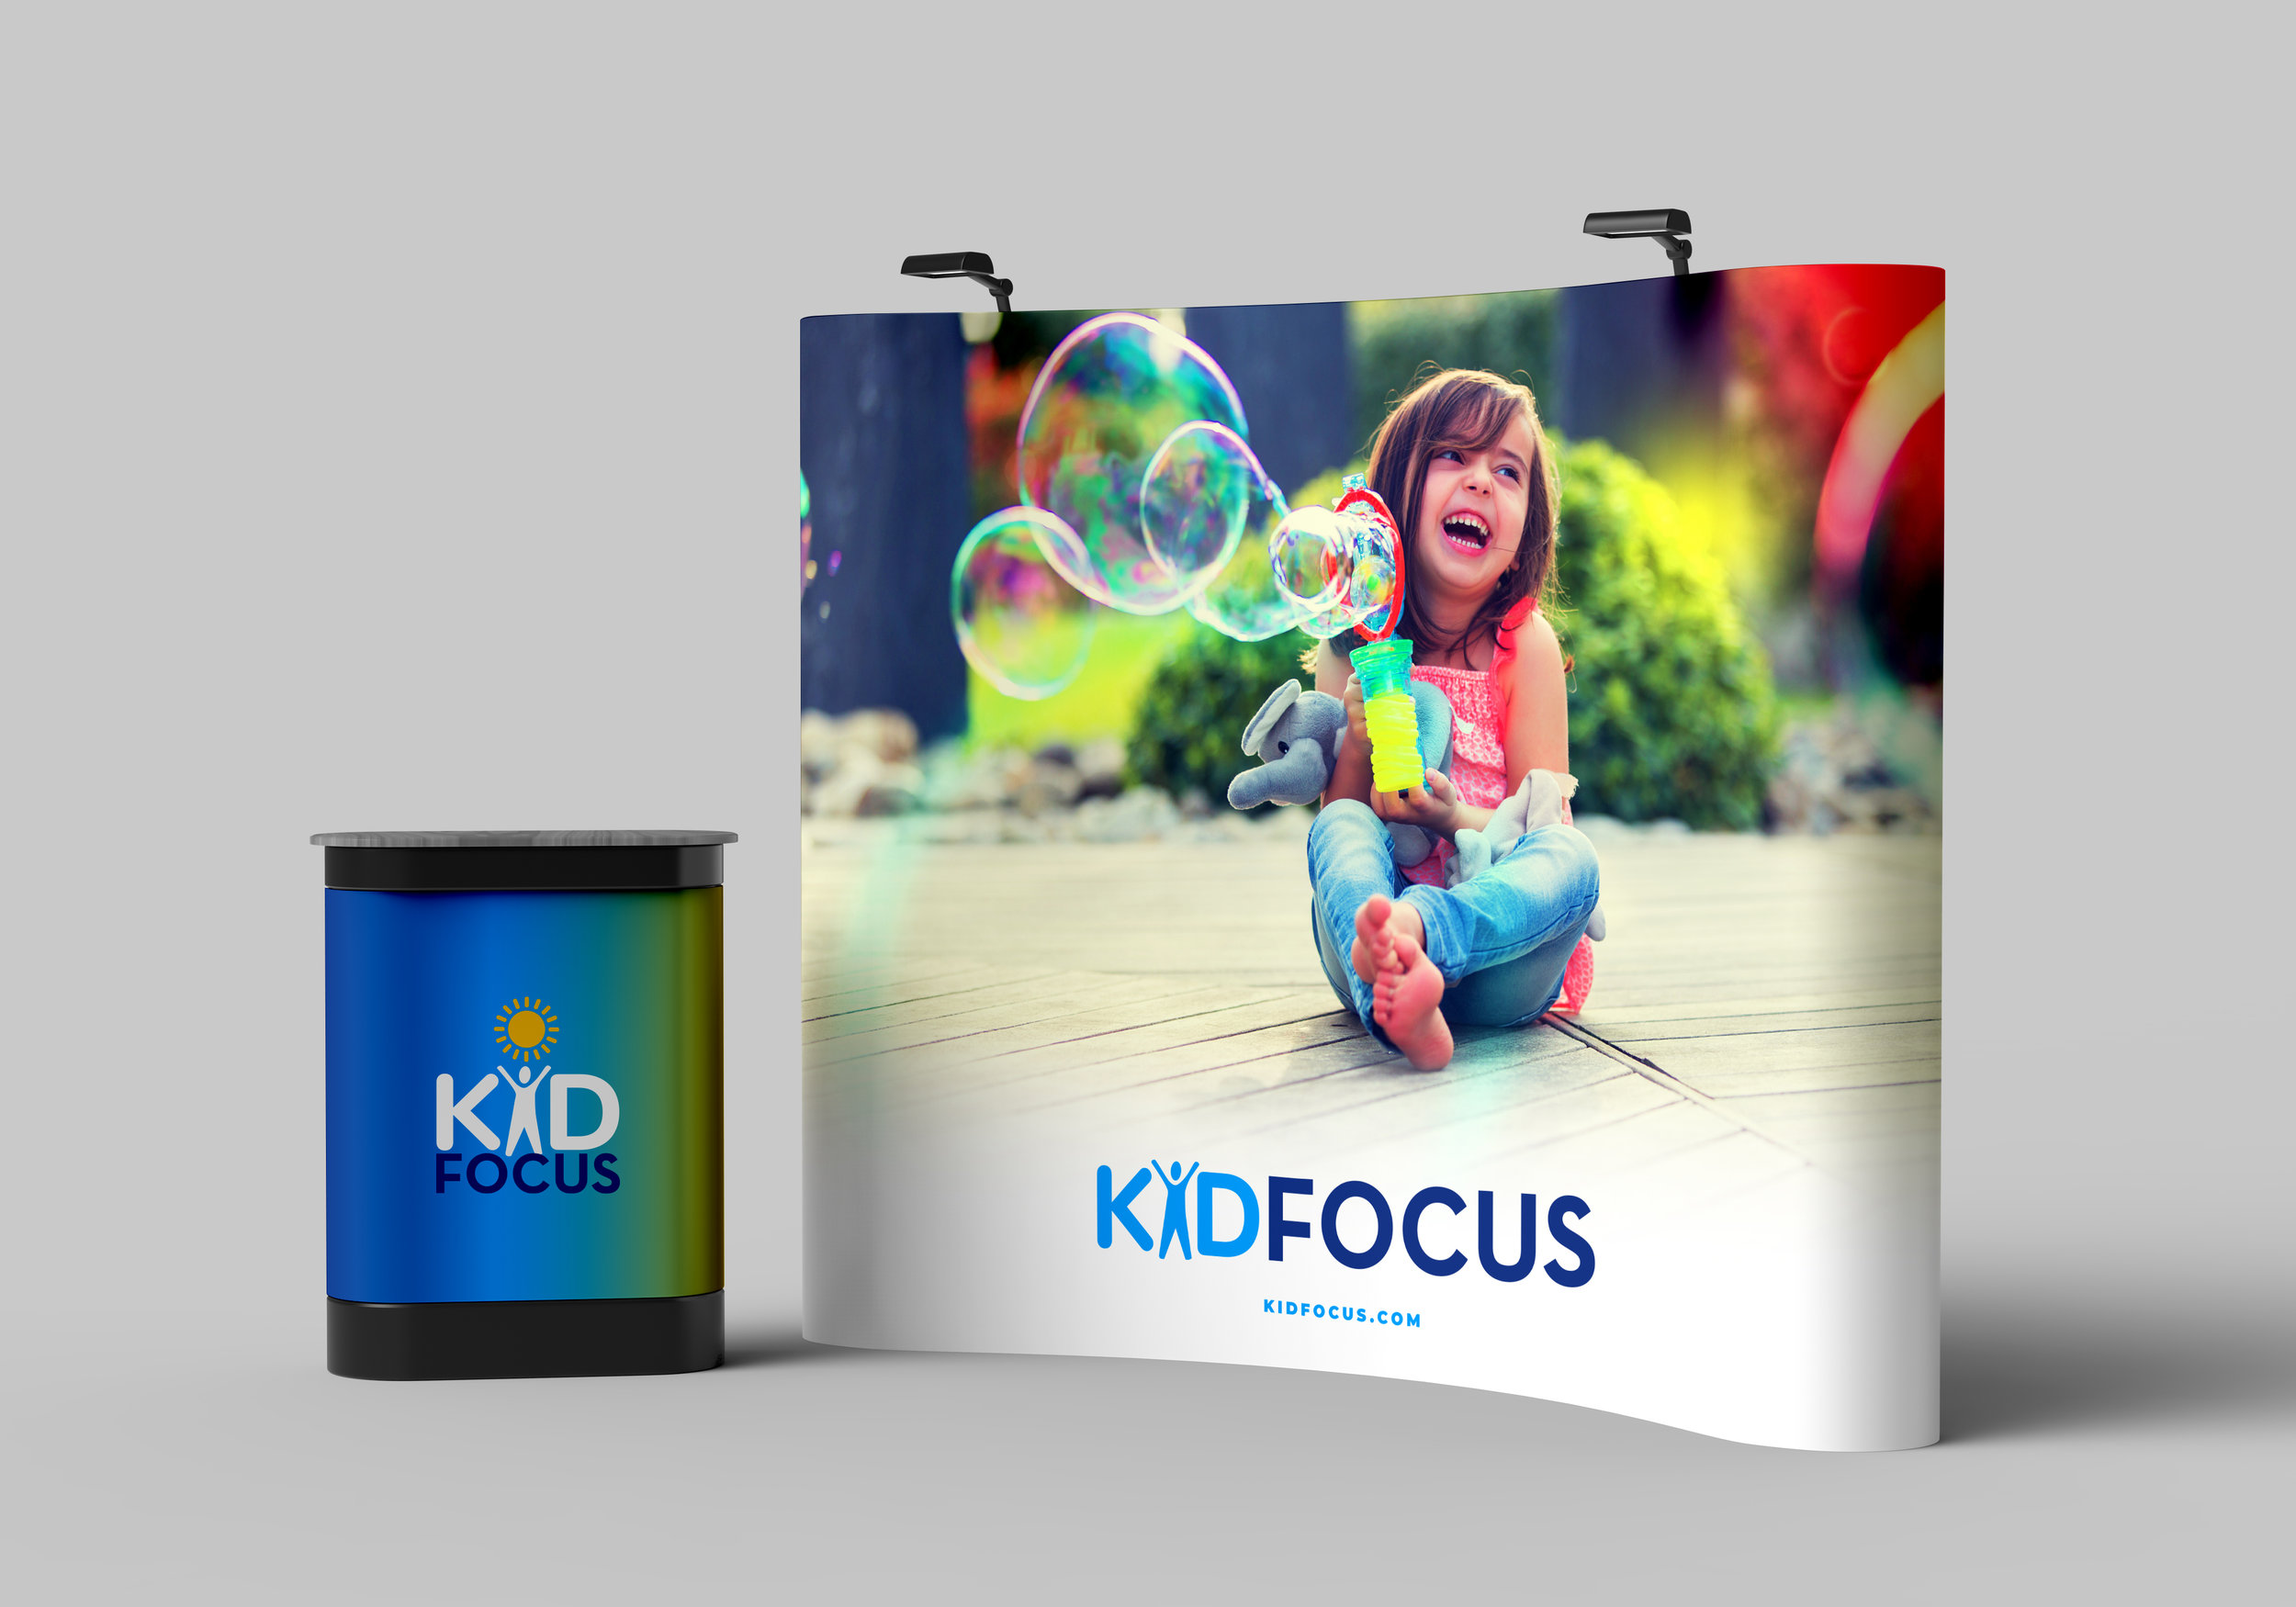 Free Trade Show Banner Stand Backdrop With Display Counter Mockup PSD.jpg